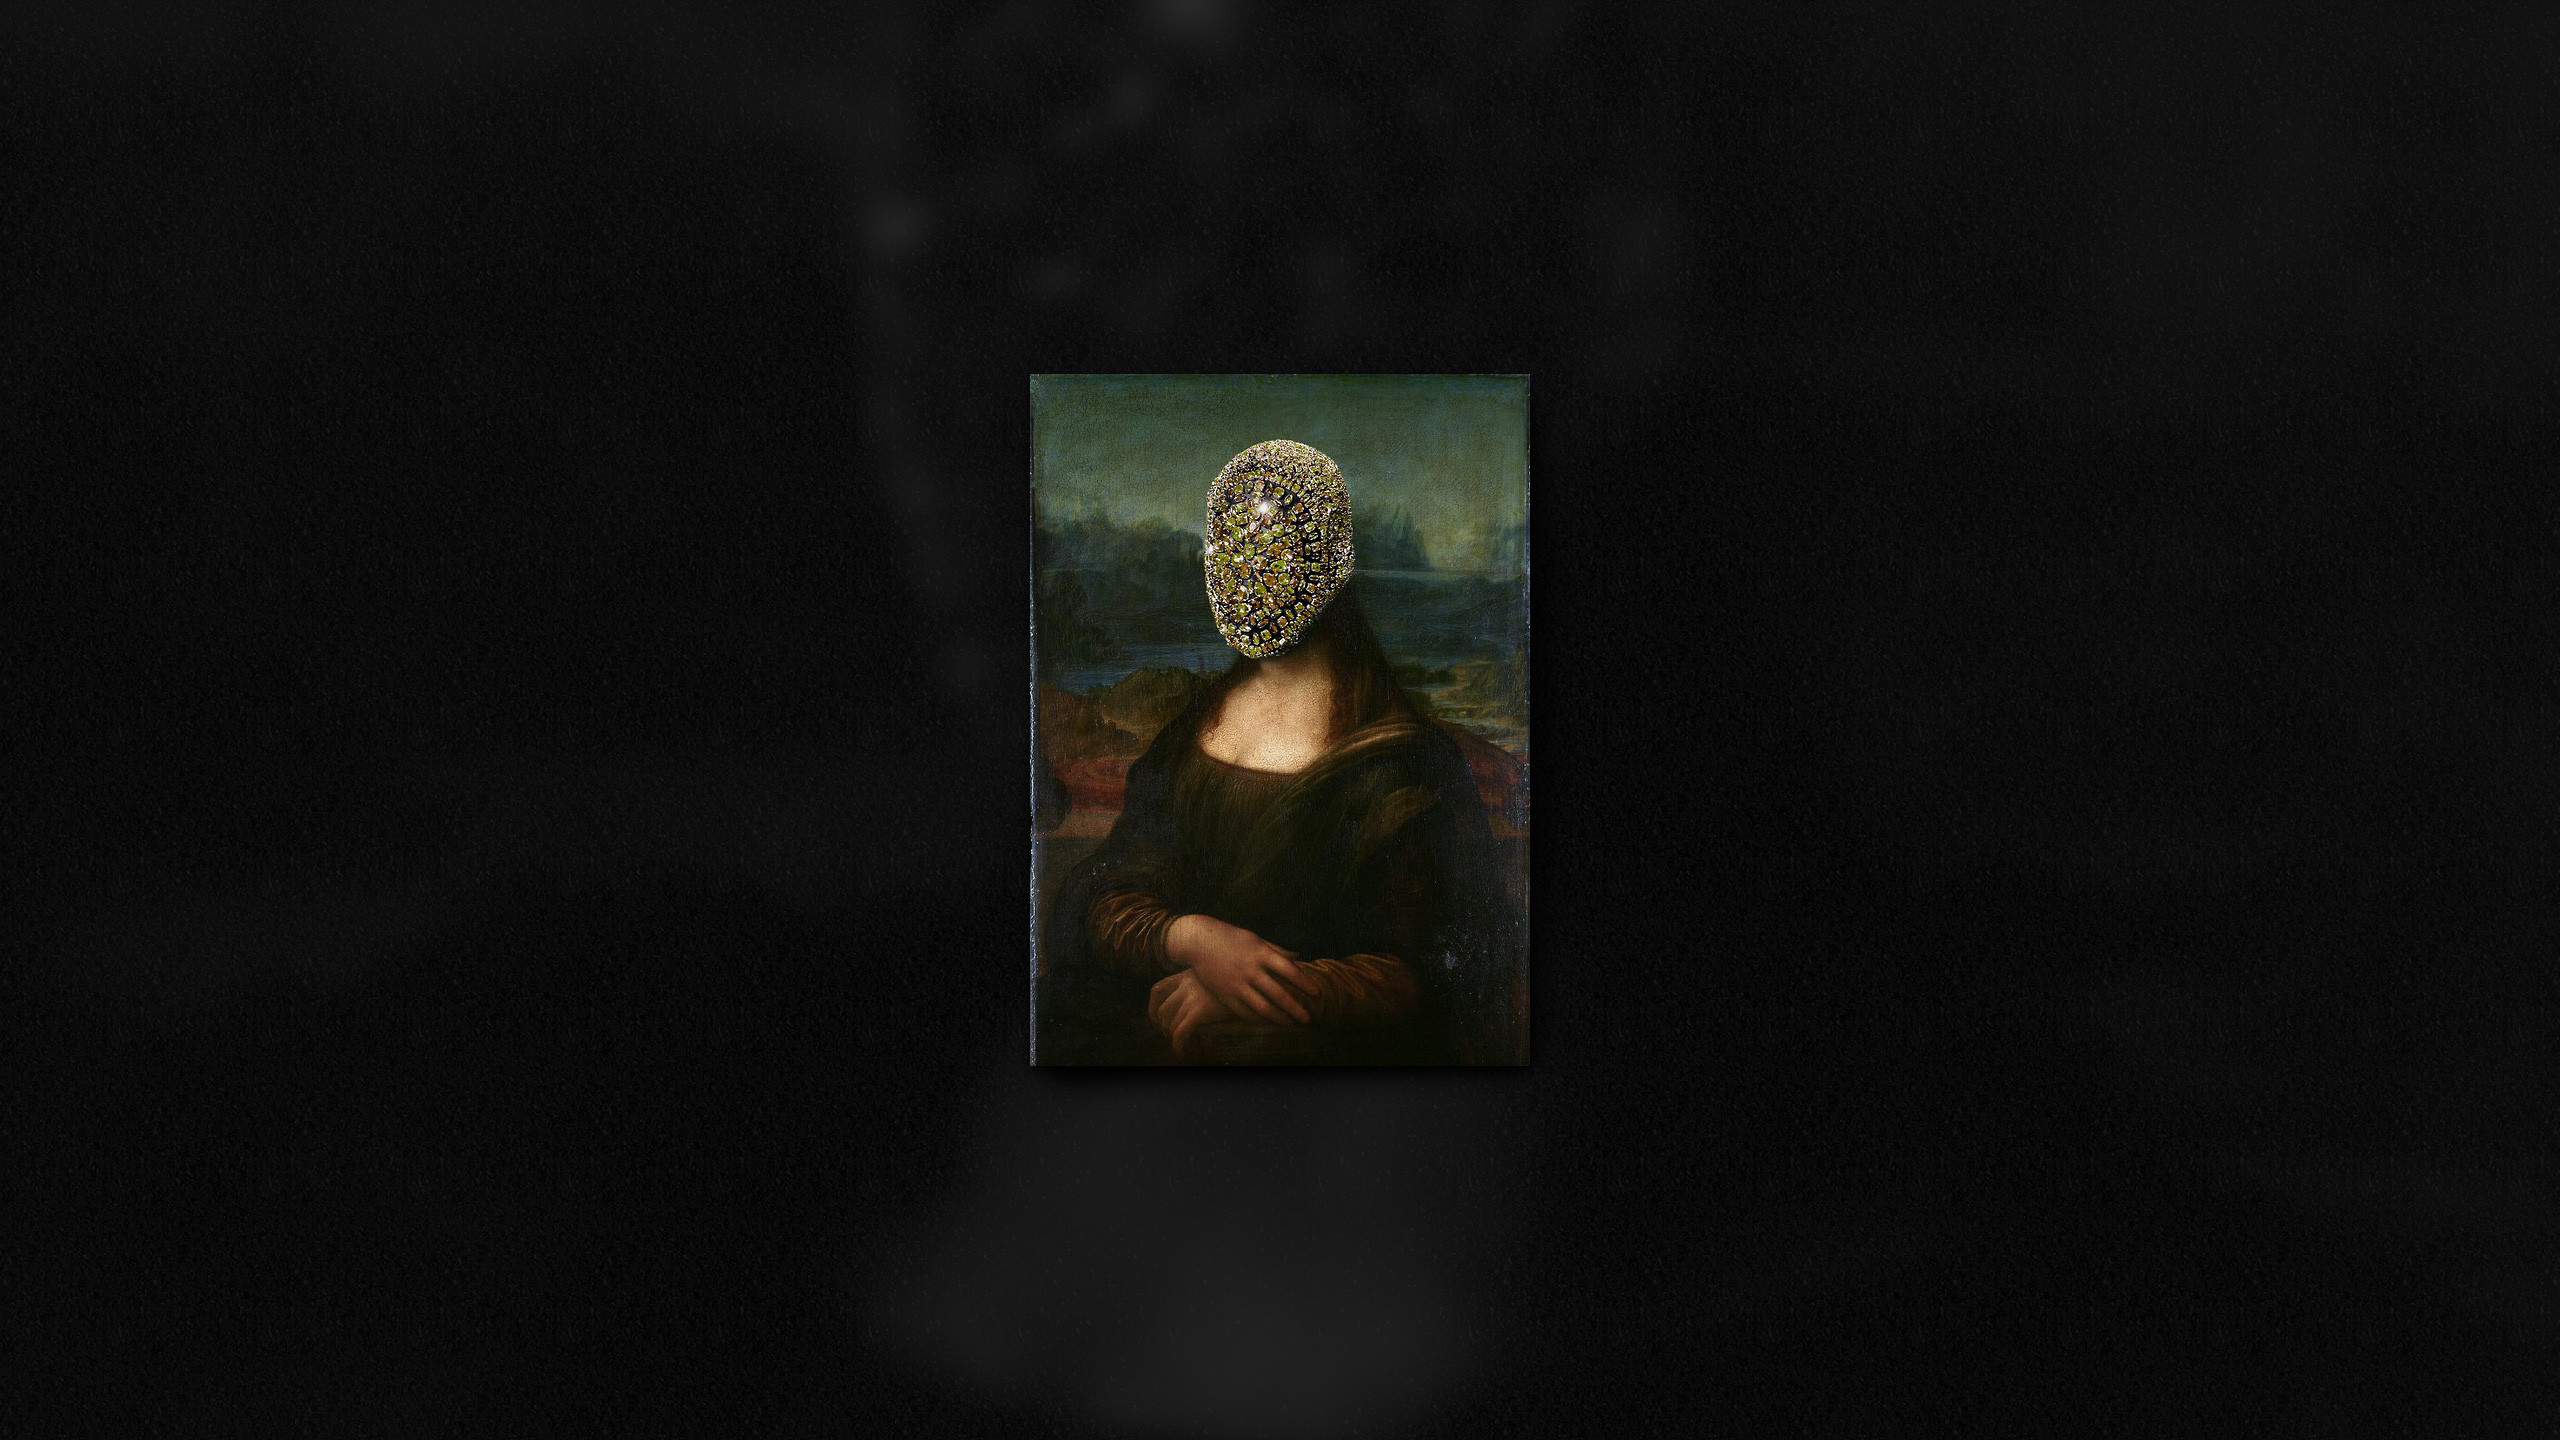 2560x1440 yeezus masks on profound art pieces page 3 kanye west forum